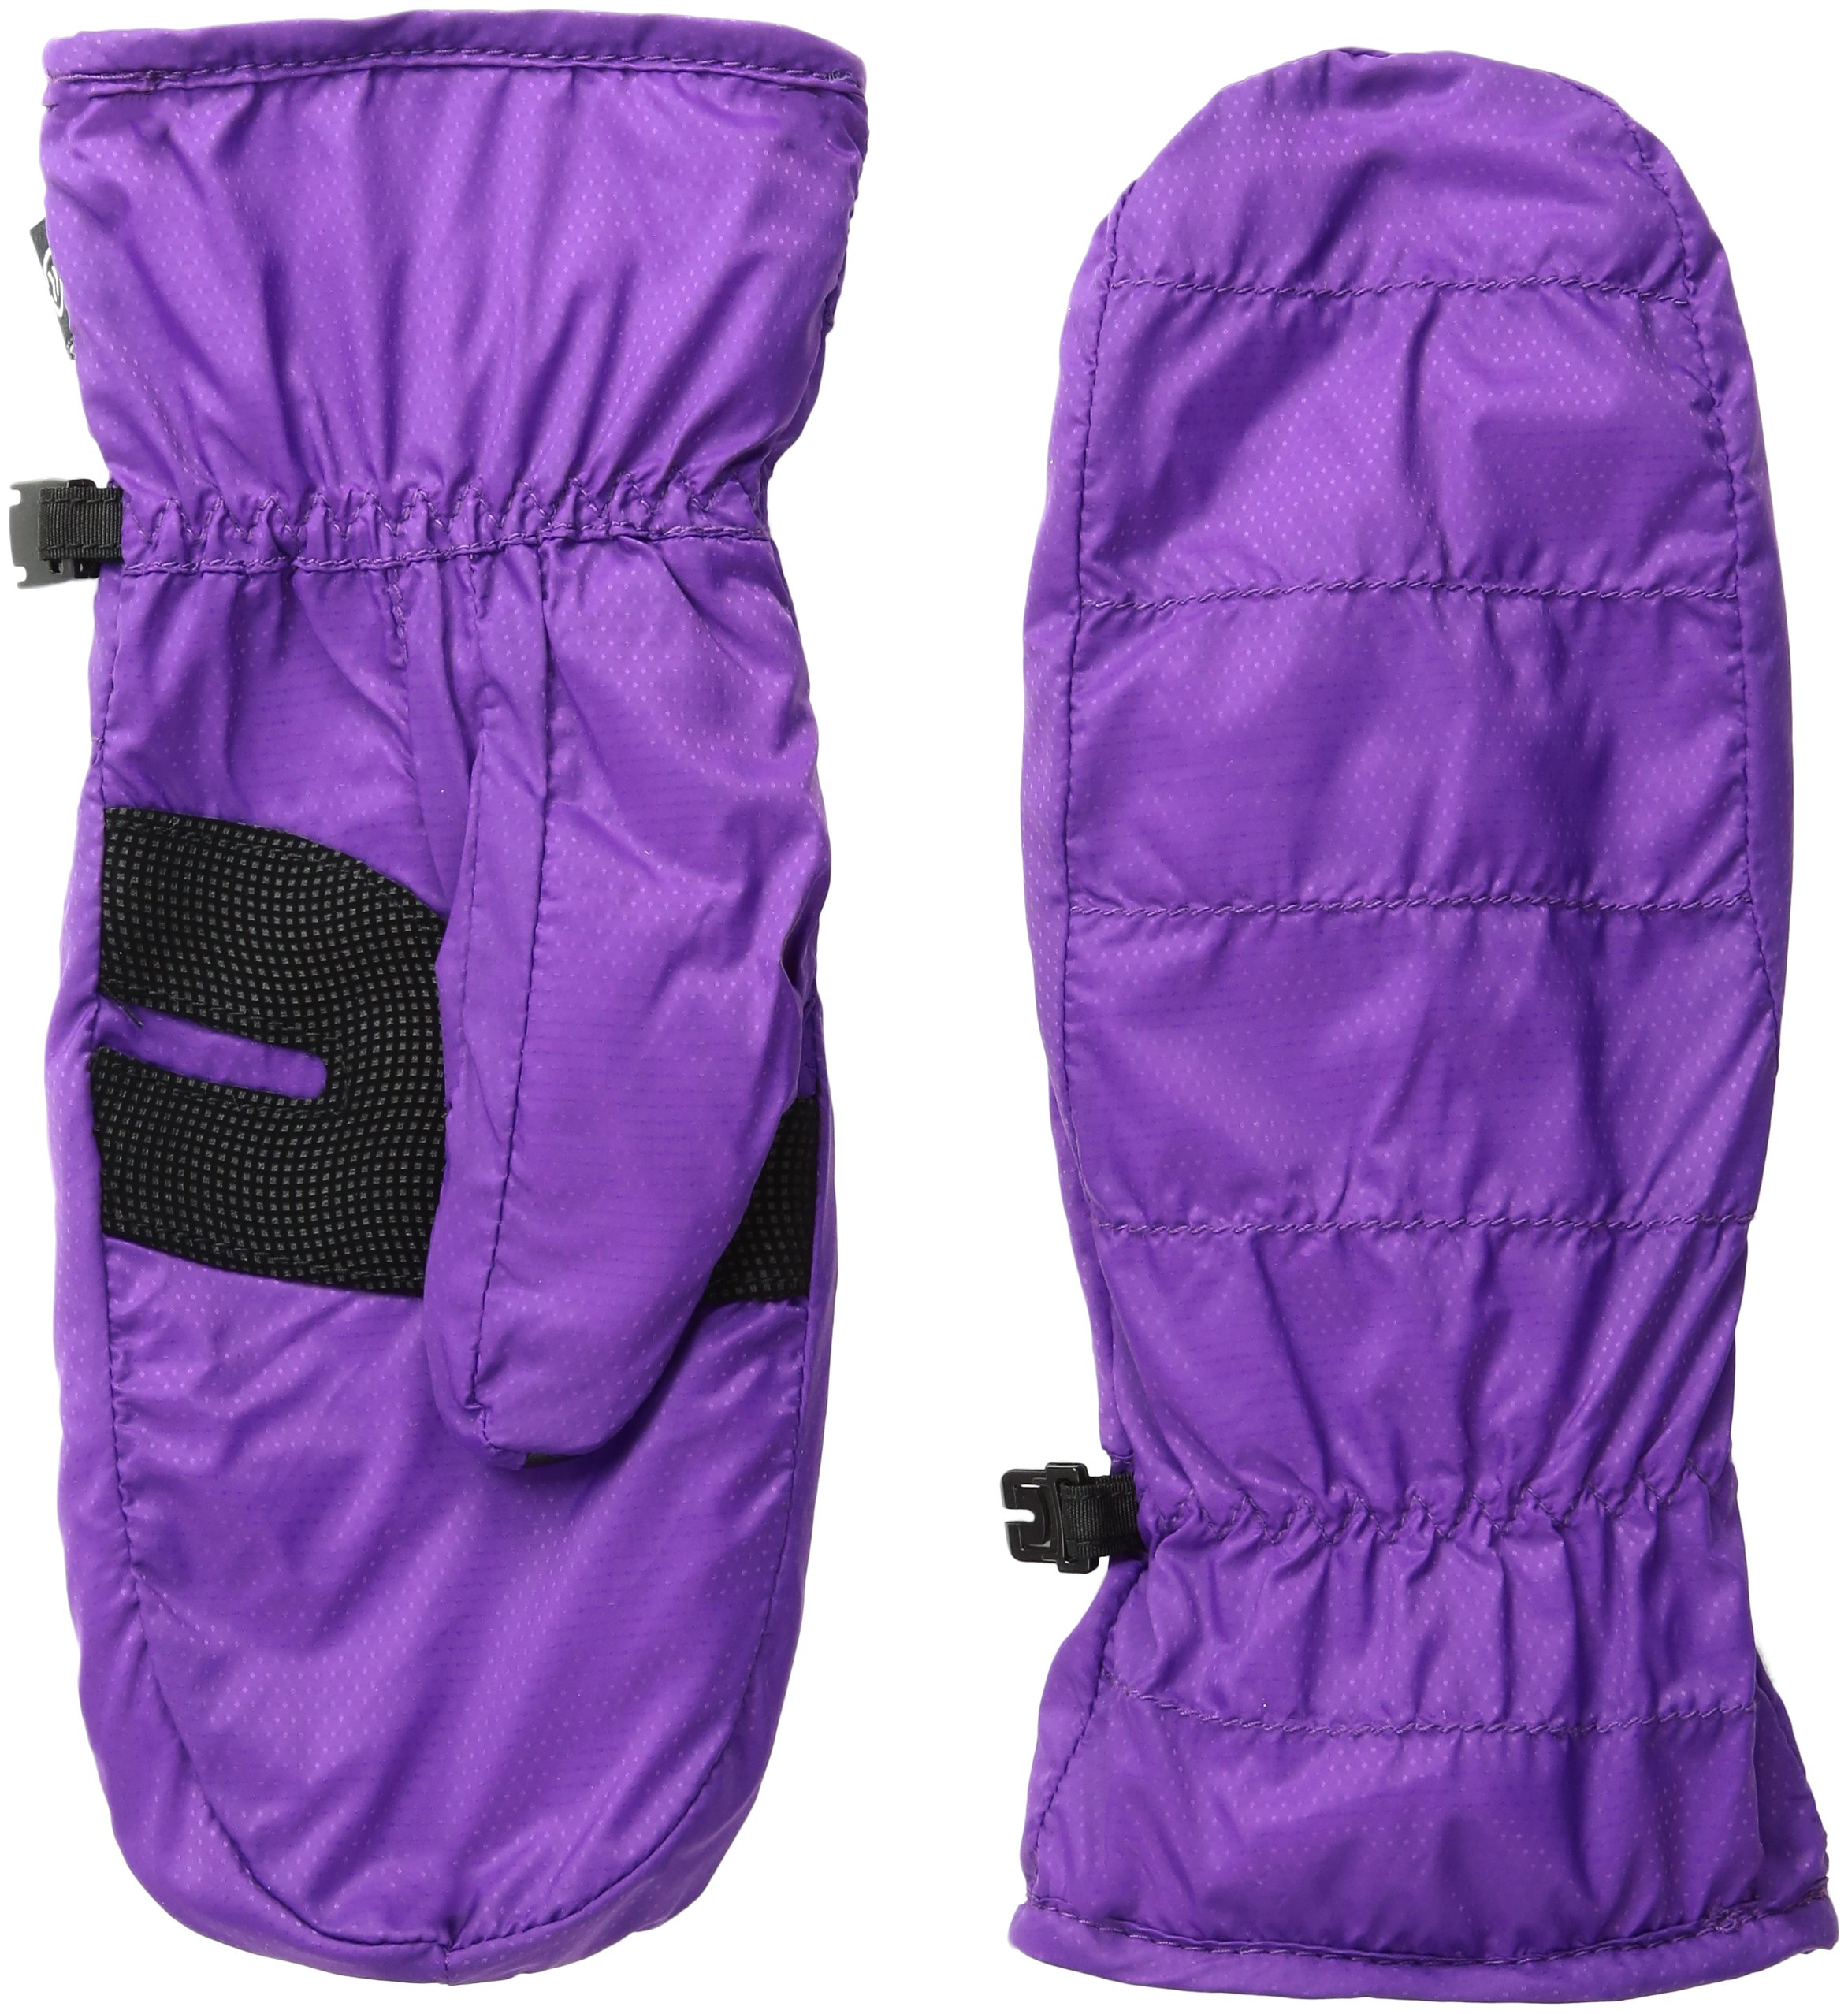 Isotoner Women's smarTouch Packable Mittens with smartDRI, Concord Grape, Medium by ISOTONER